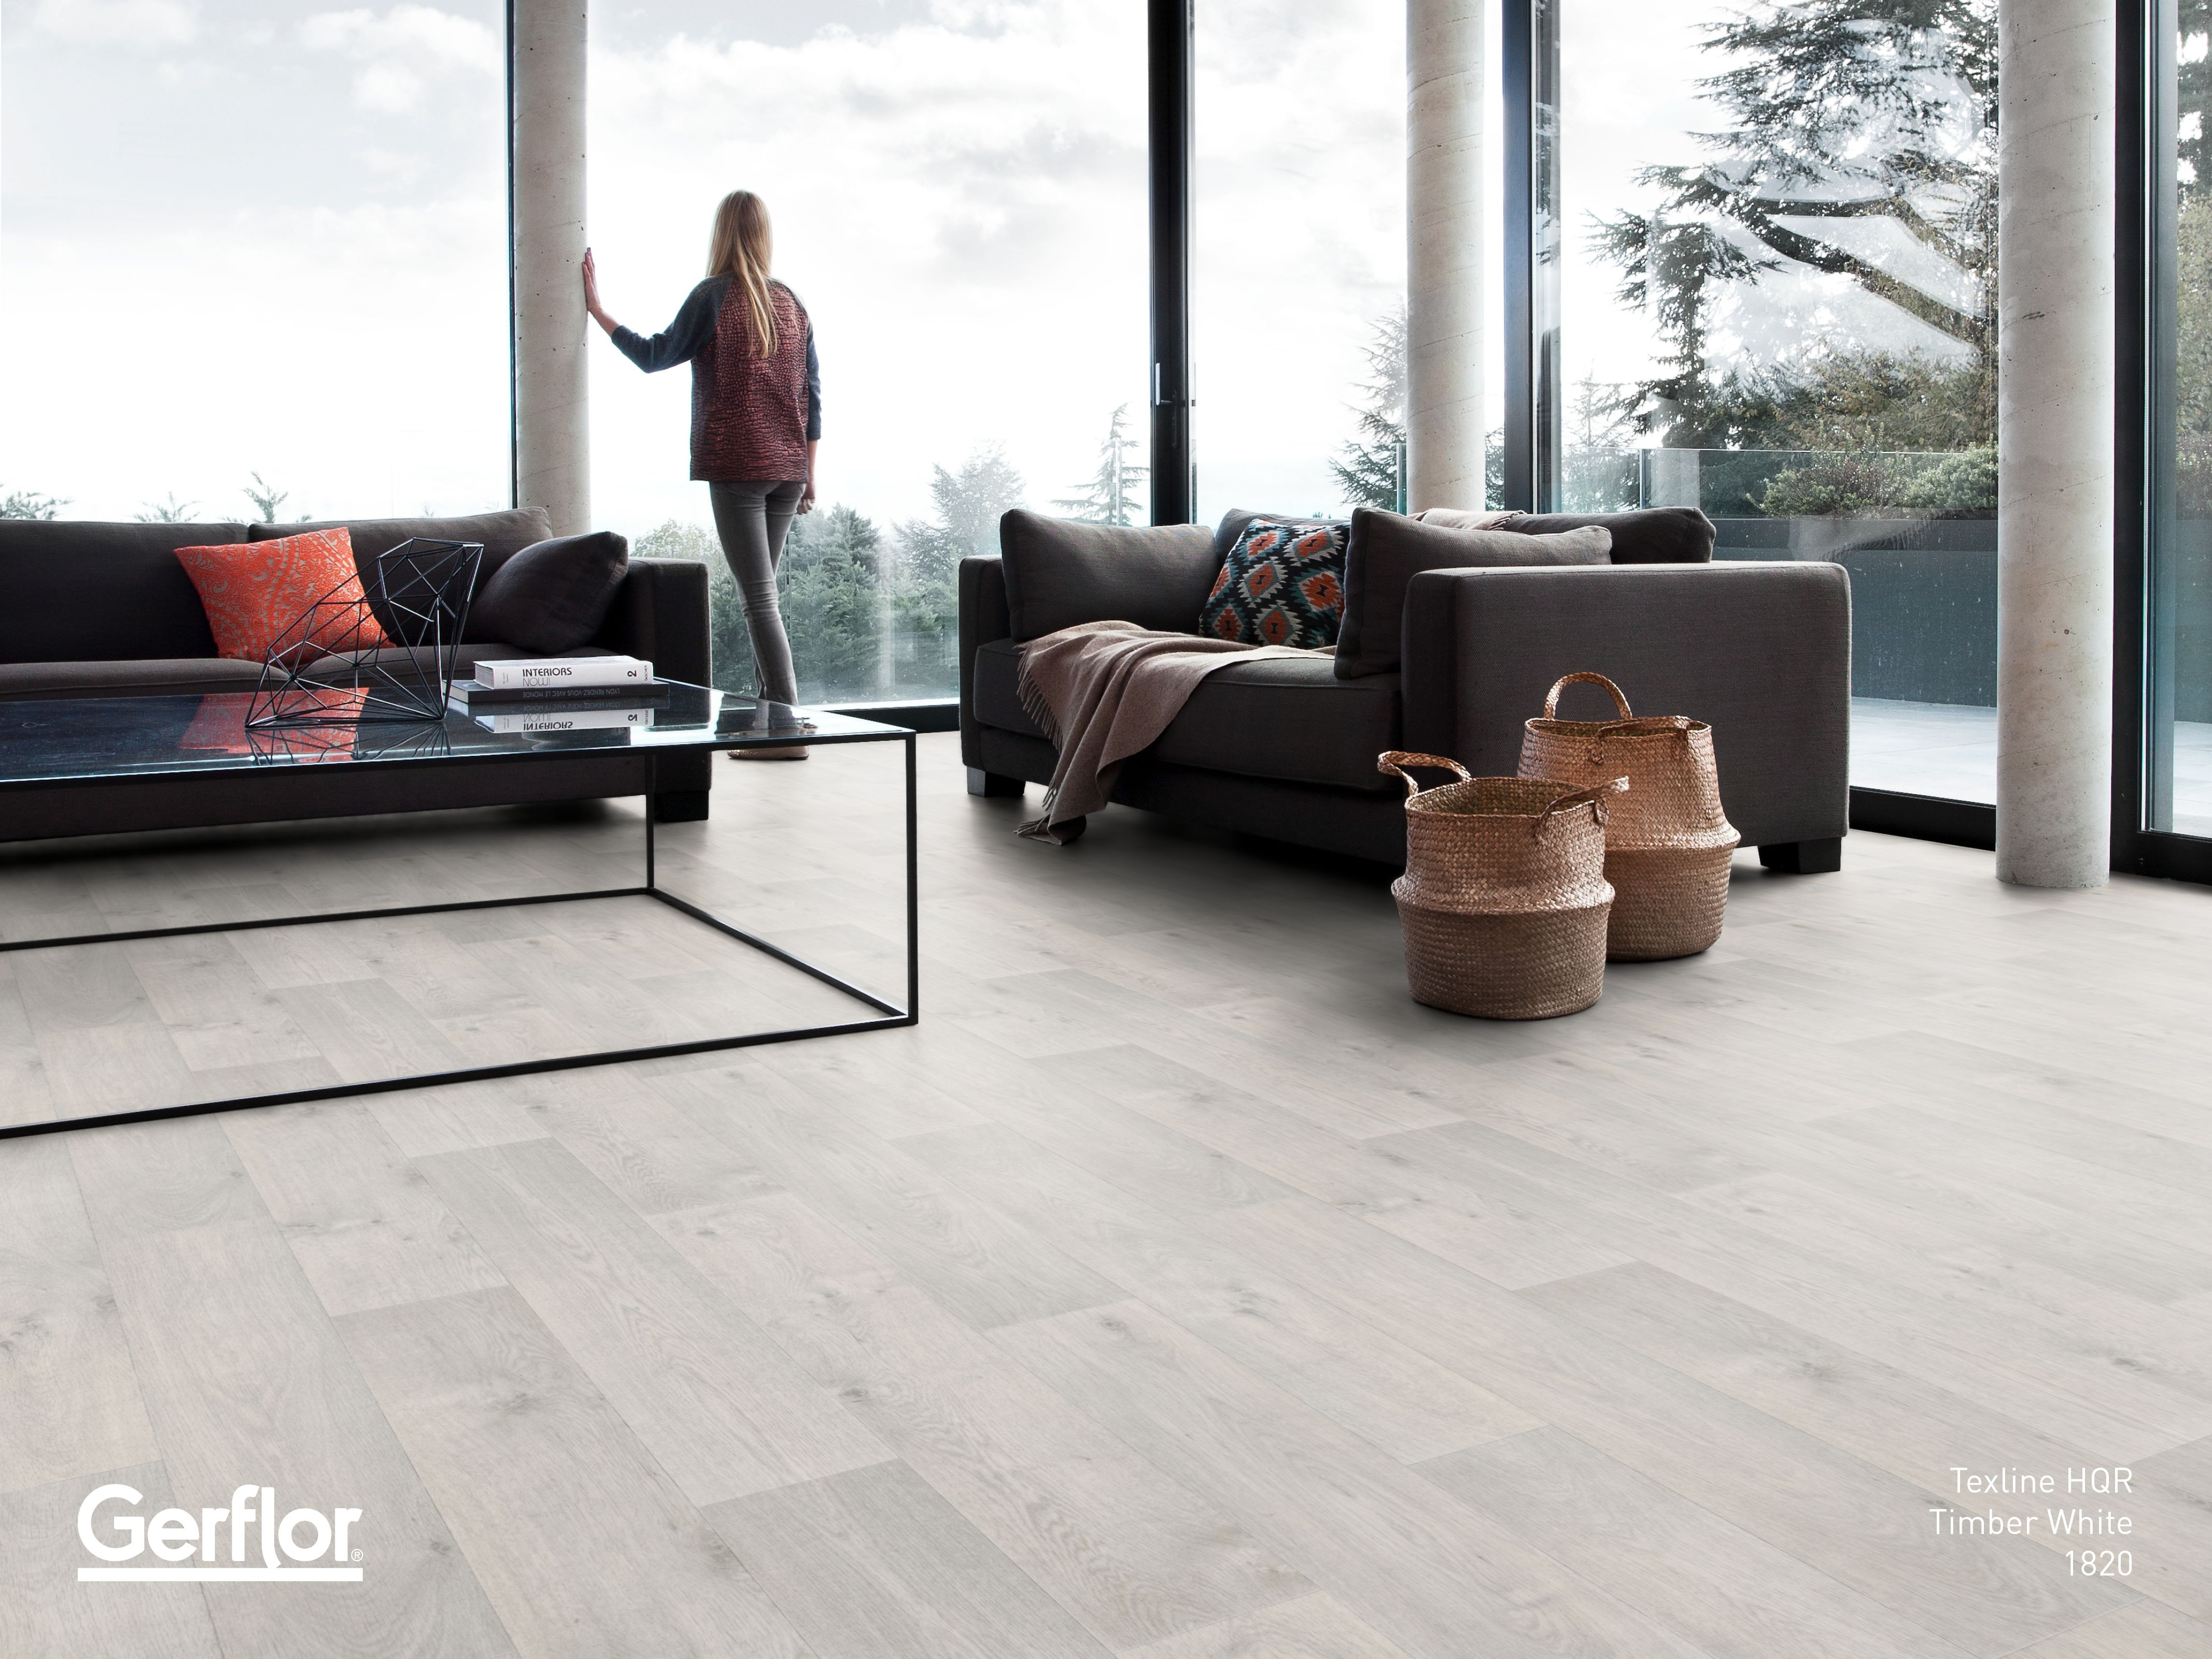 Gerflor\'s new range of Texline HQR features graphic lines and strong ...